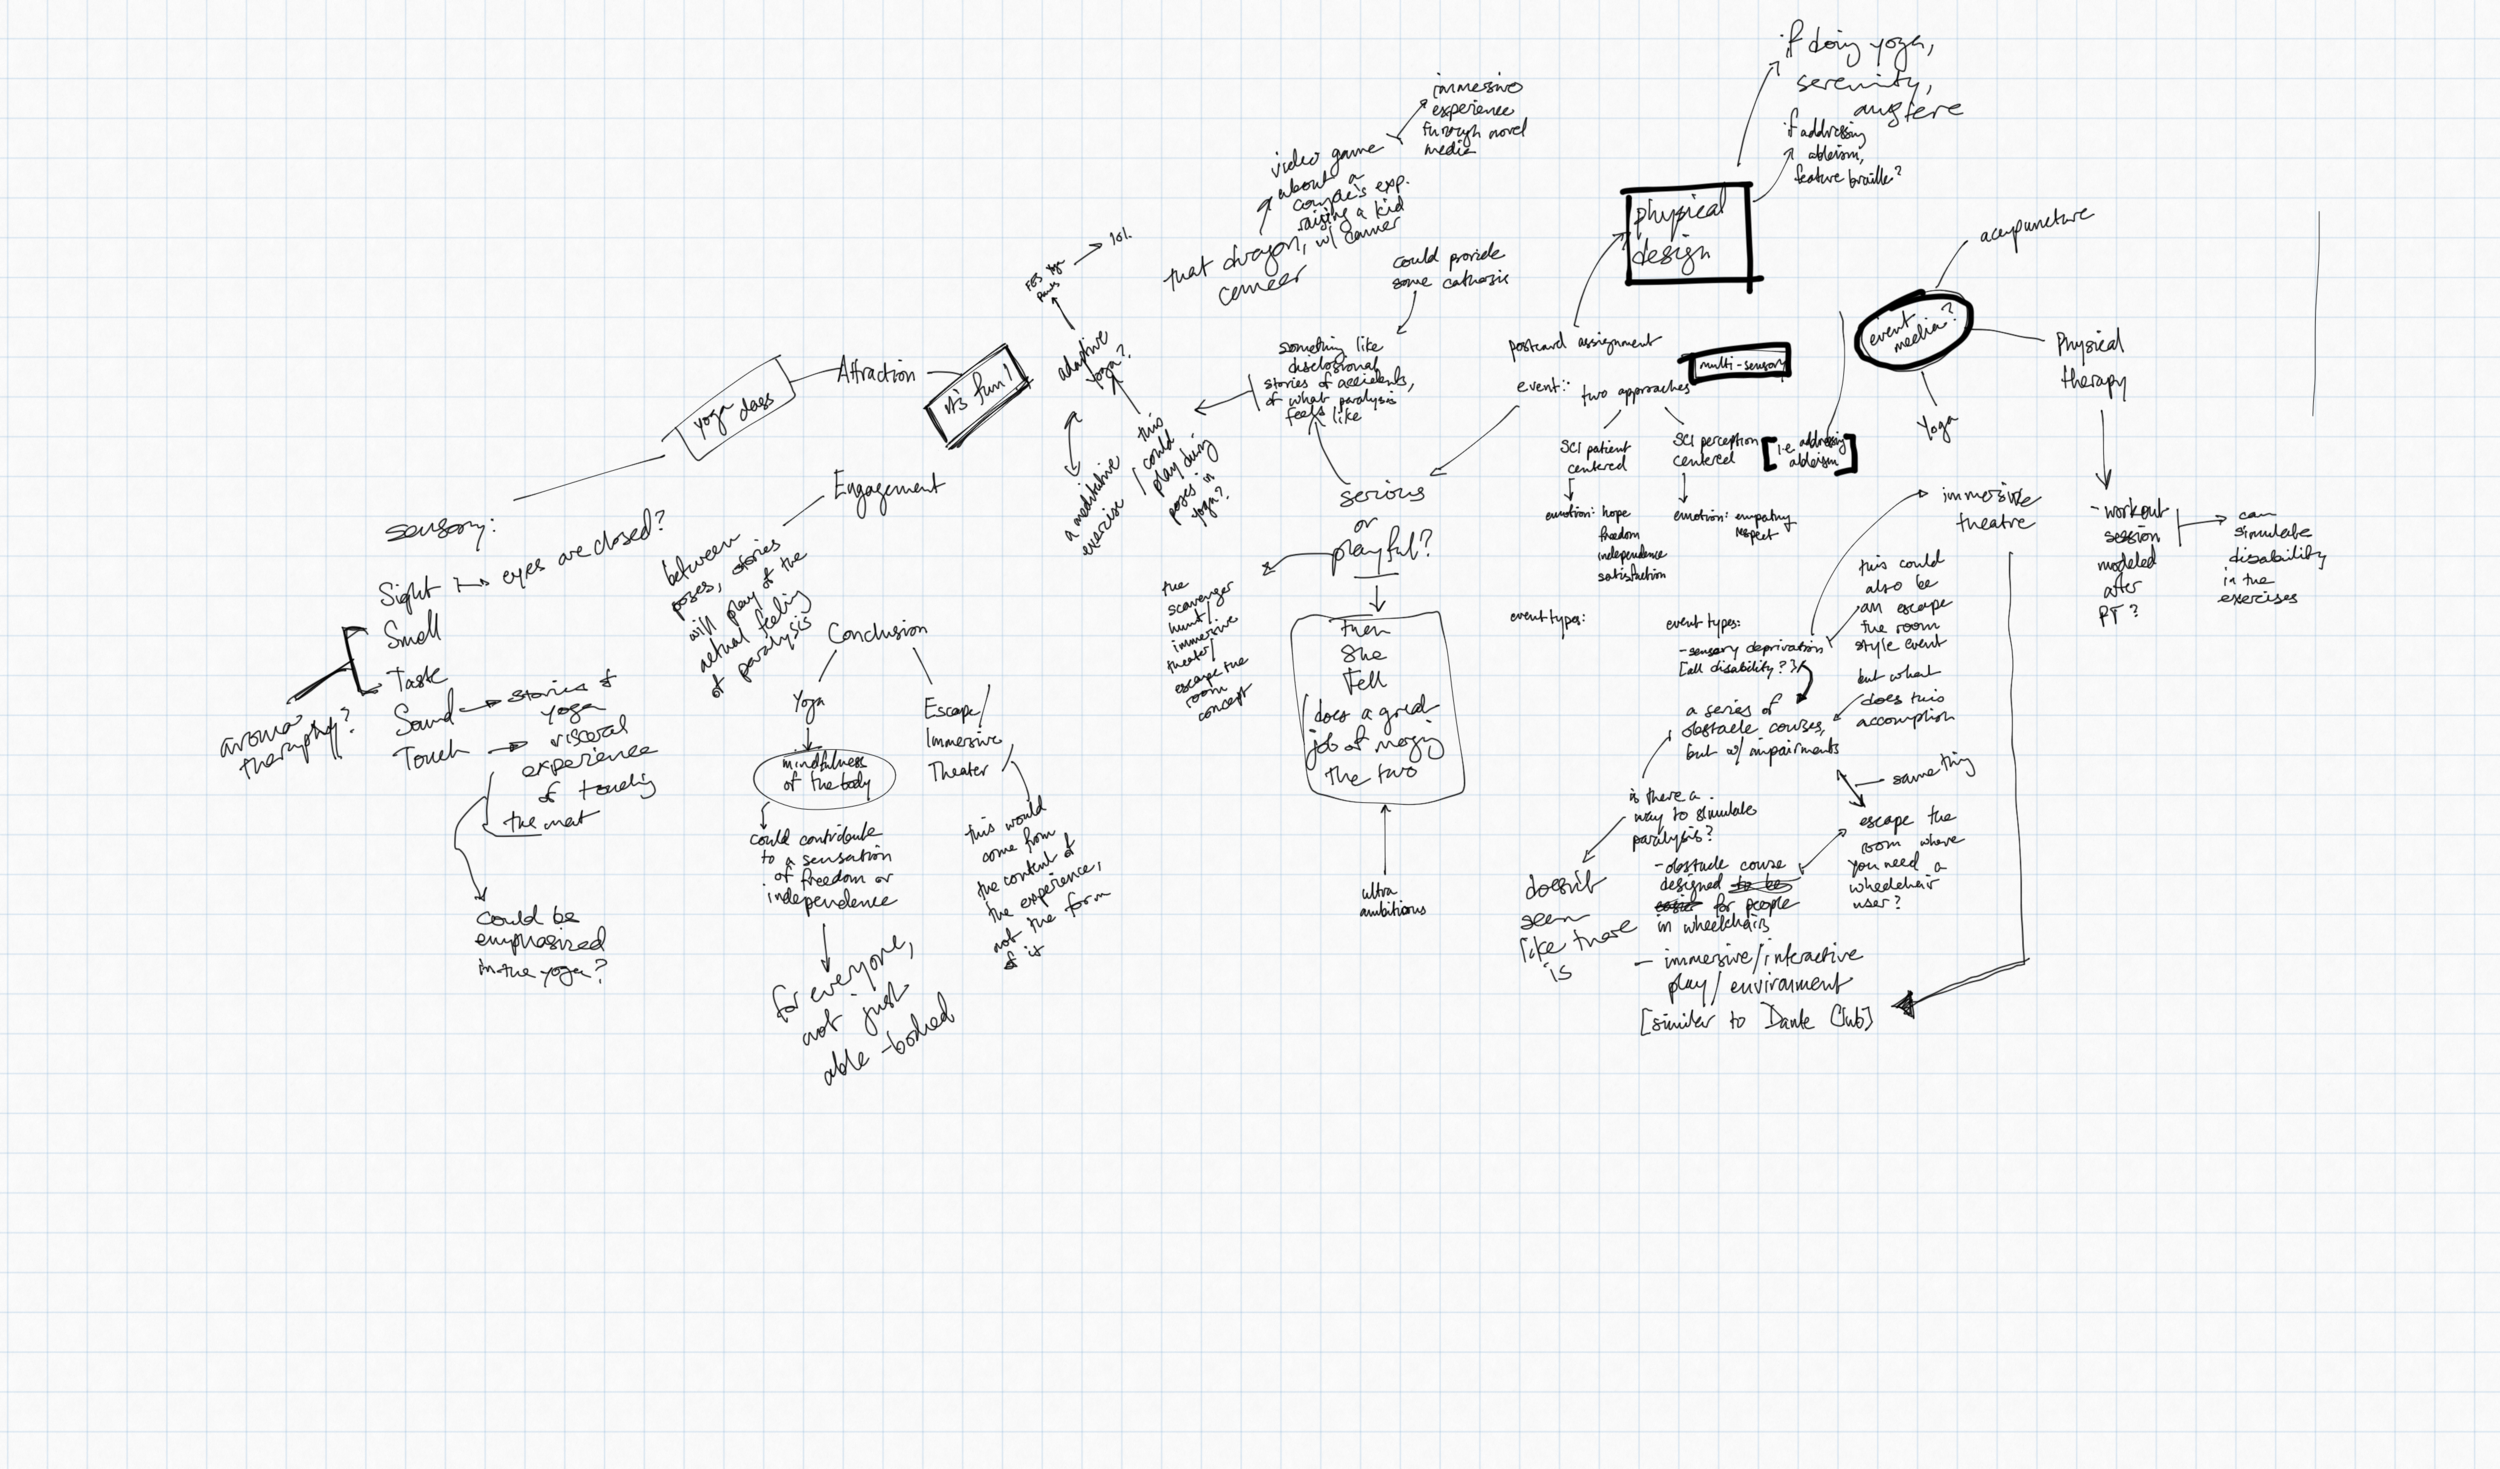 Some of my notes from the ideation process.